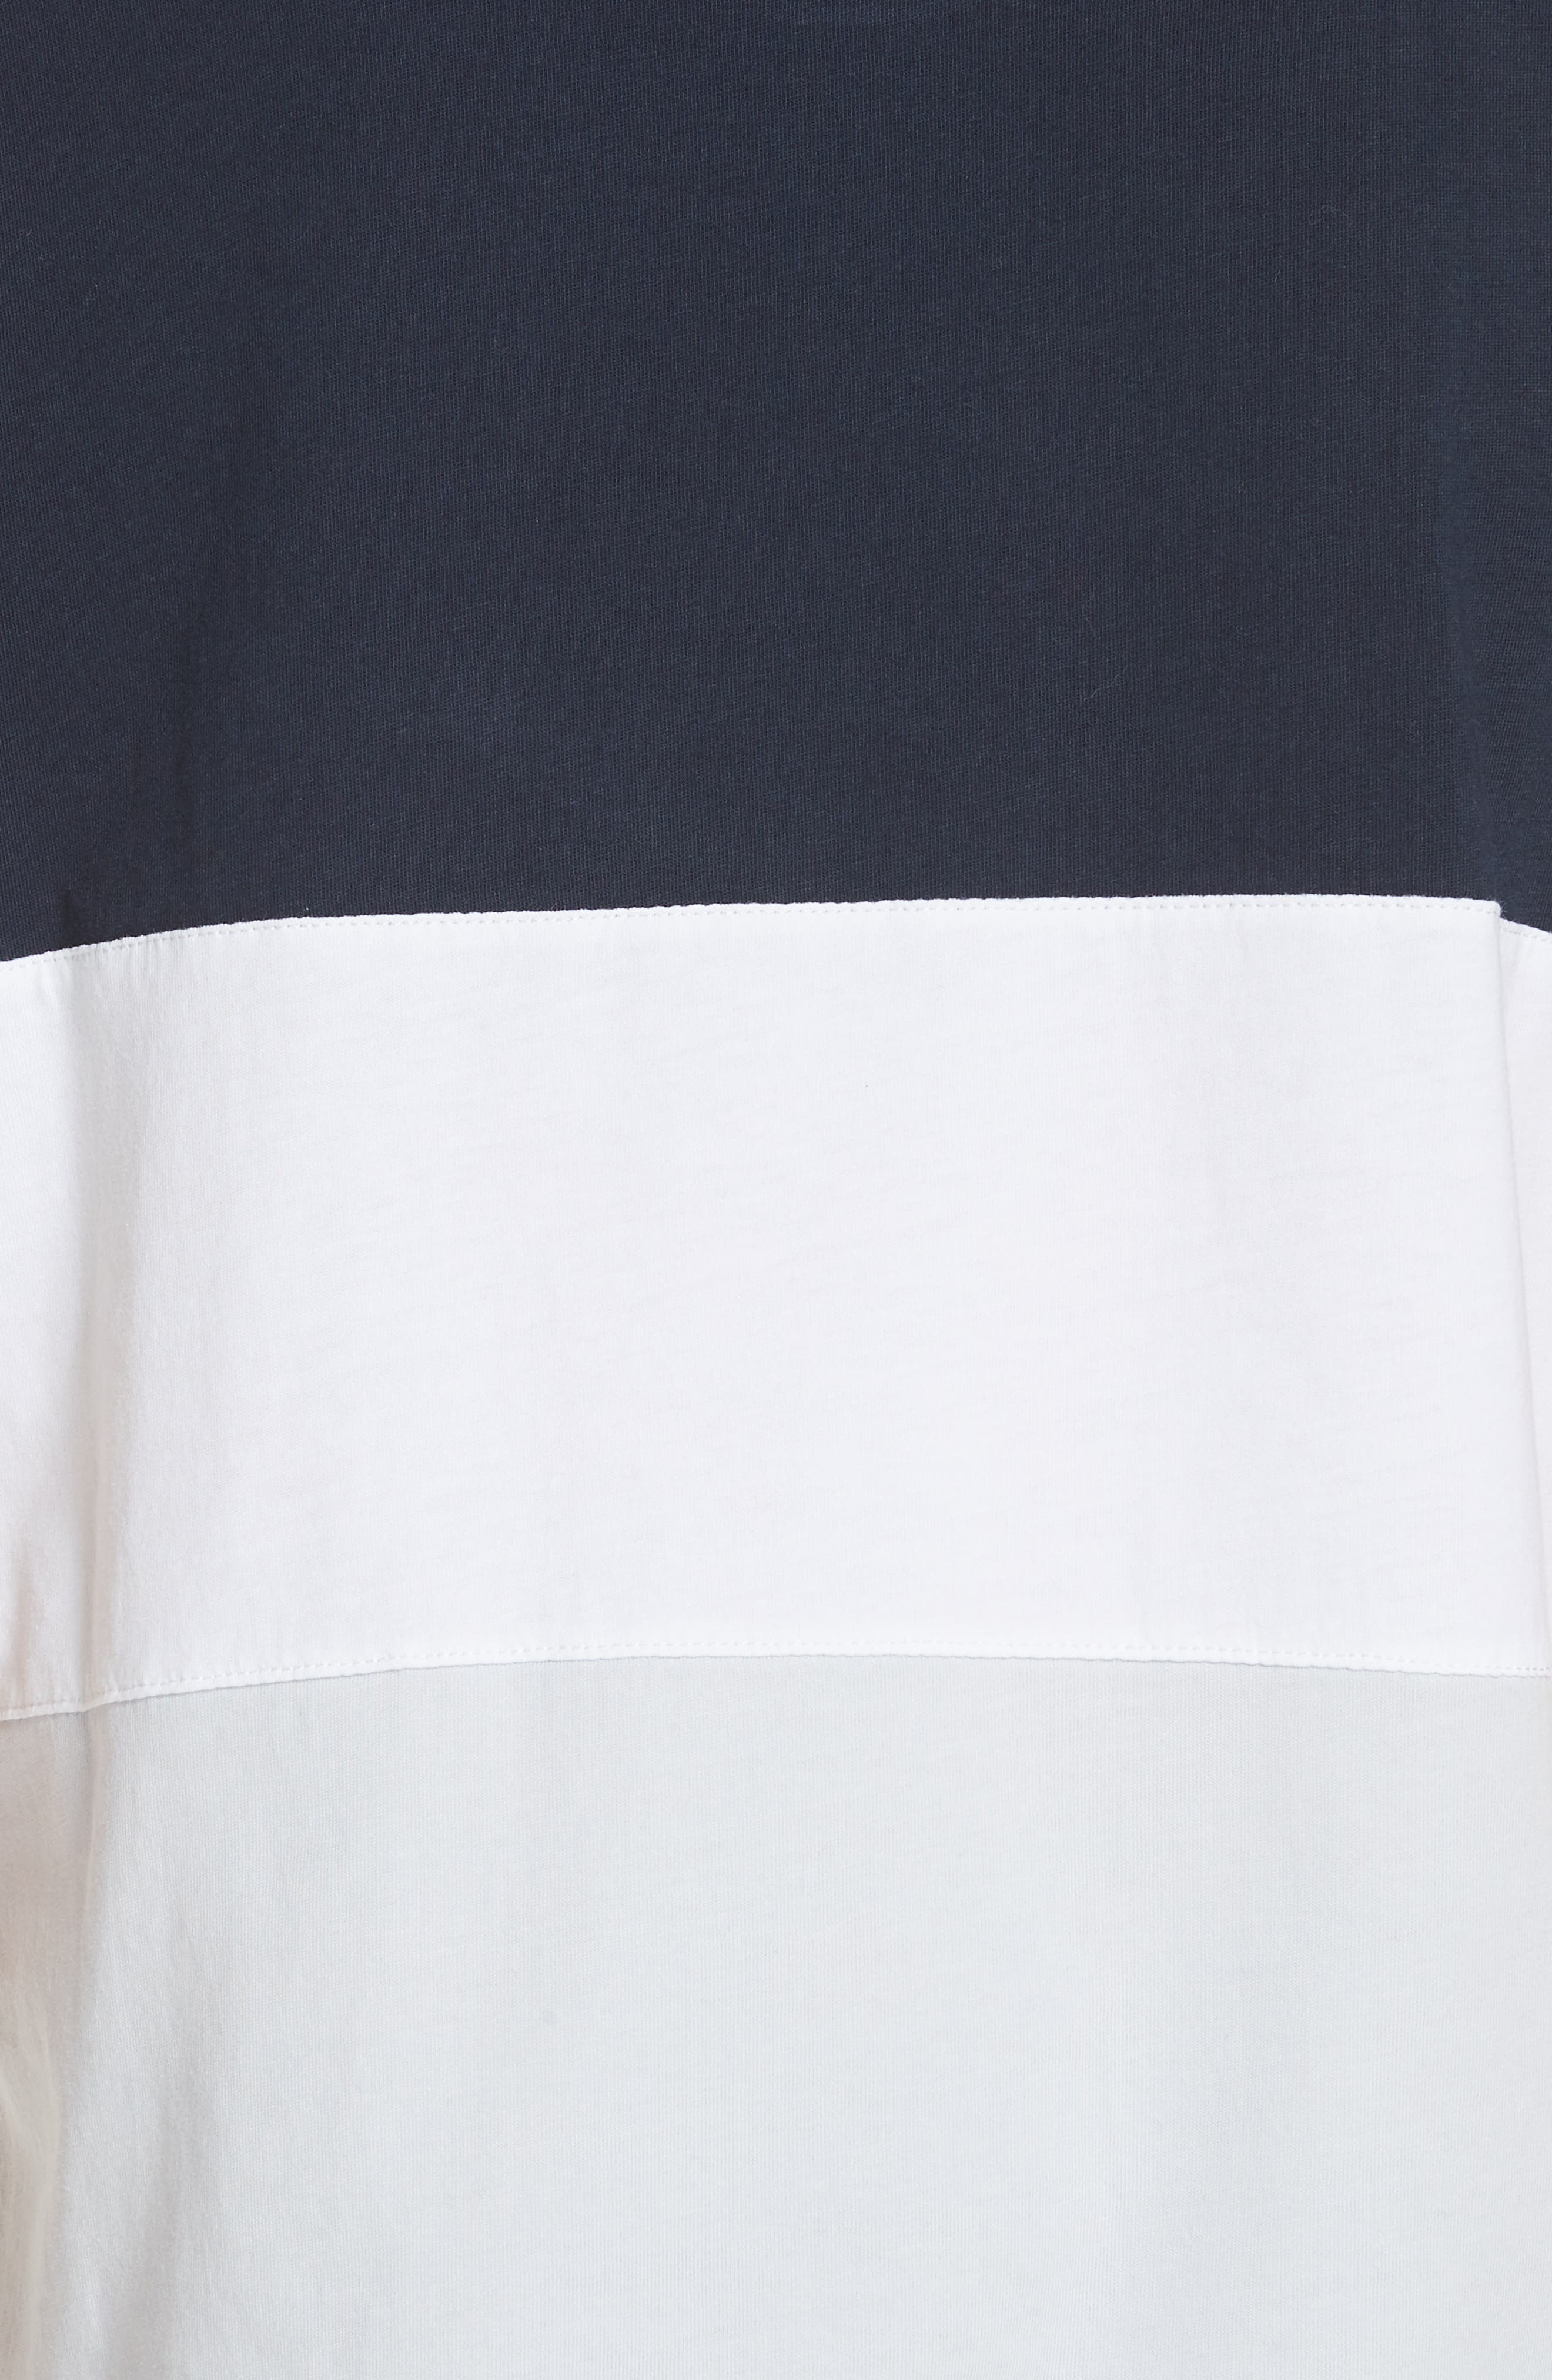 Colorblock Tee,                             Alternate thumbnail 5, color,                             NAVY WHITE BLUE COLOR BLOCK